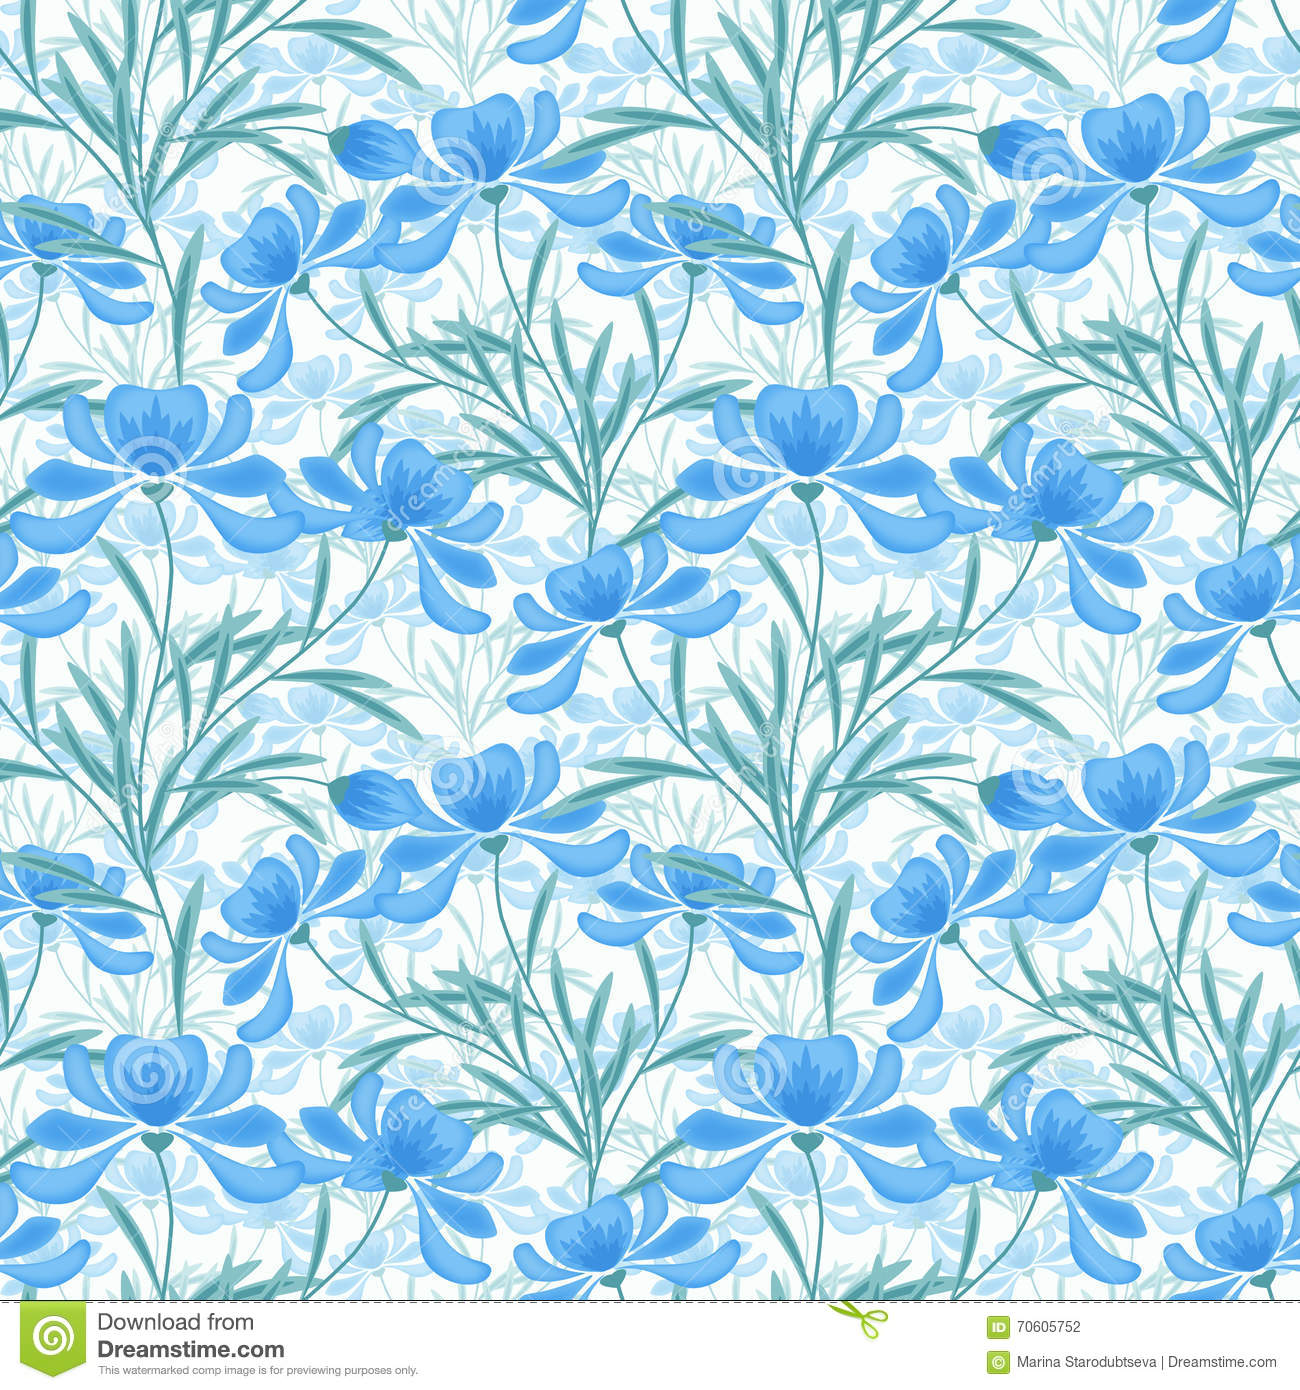 Floral Seamless Pattern Cartoon Cute Light Blue Flowers White Background Retro Style 70605752